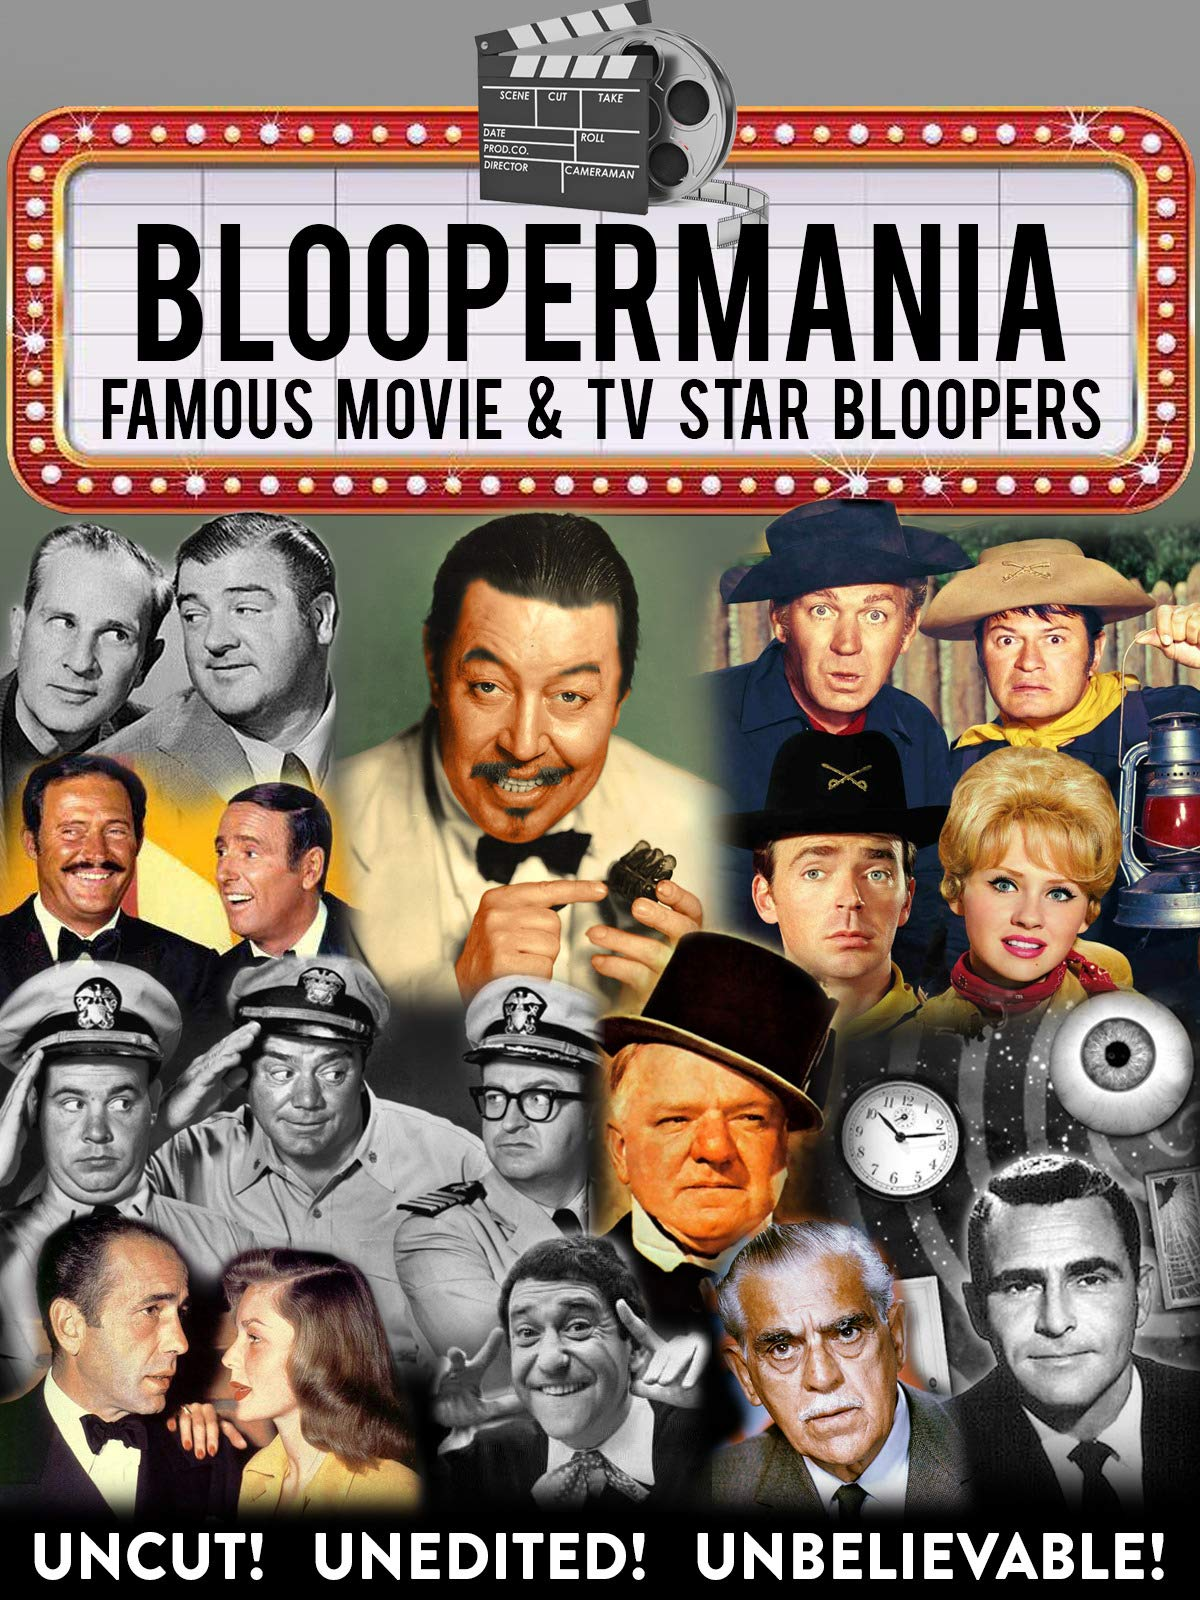 Bloopermania - Famous Movie & TV Star Bloopers, Uncut! Unedited! Unbelievable!